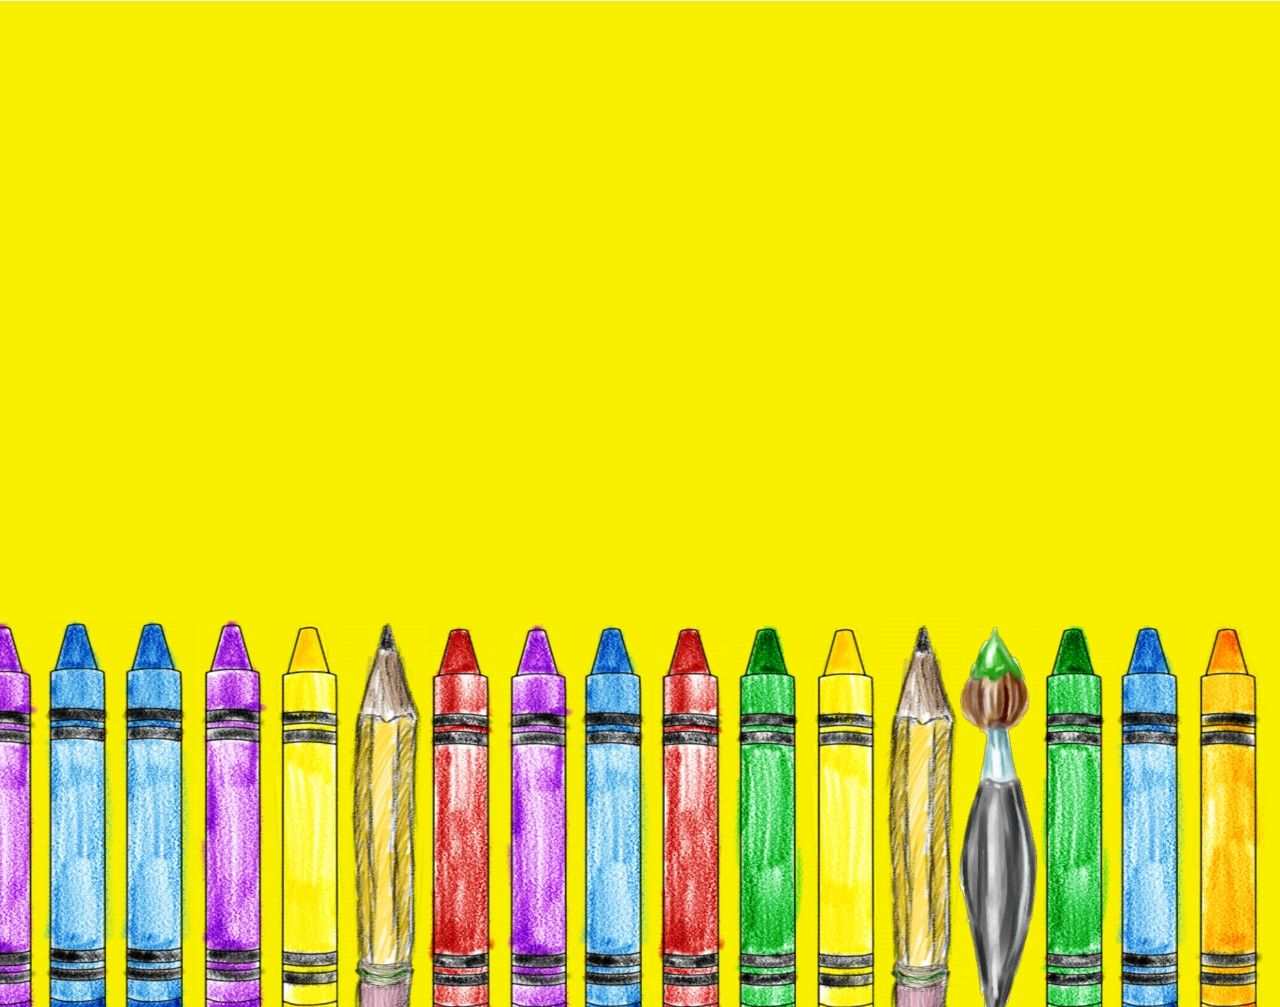 Hd wallpaper education - Free Education Powerpoint Backgrounds Wallpapers Download Ppt